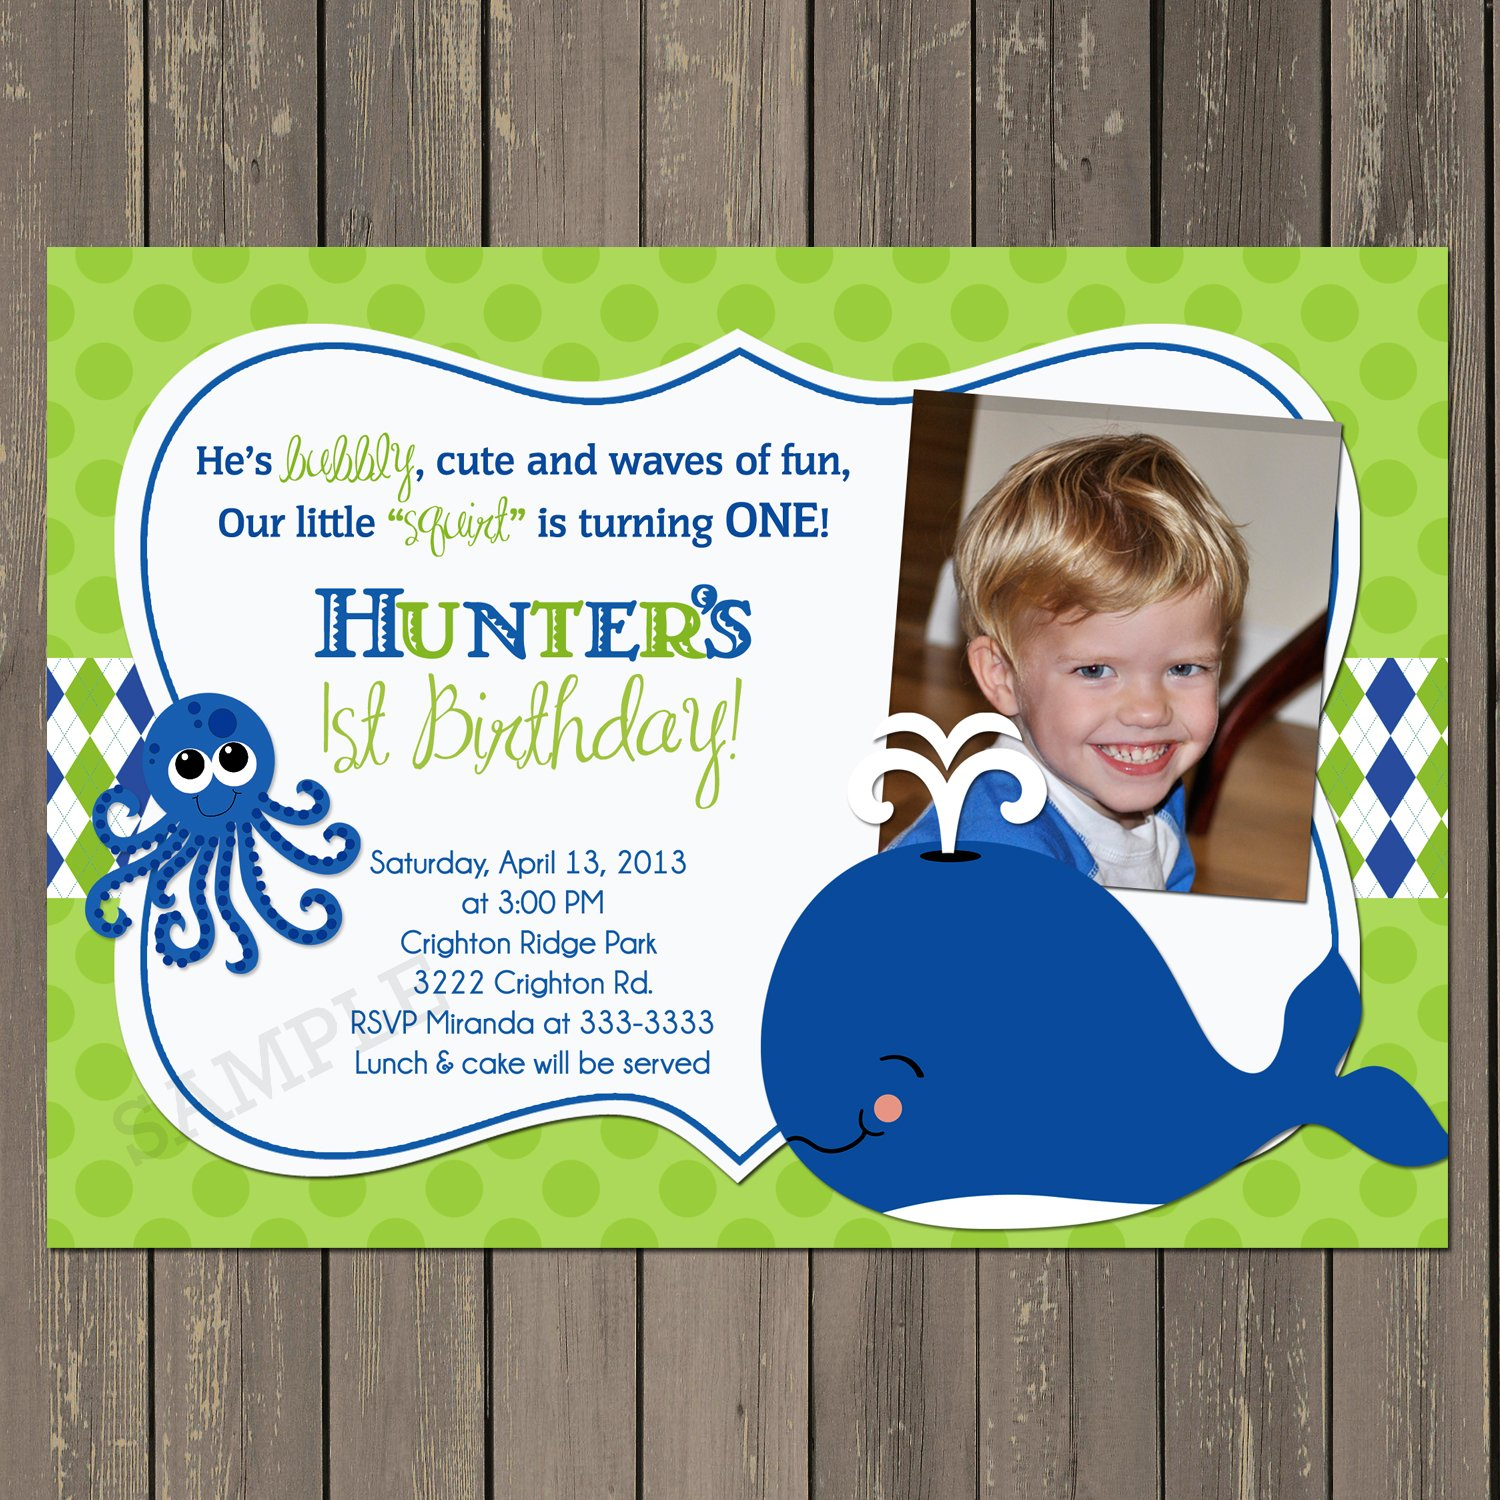 Amazon whale birthday invitation whale first birthday party amazon whale birthday invitation whale first birthday party invitation boys 1st birthday invite preppy navy and green custom handmade stopboris